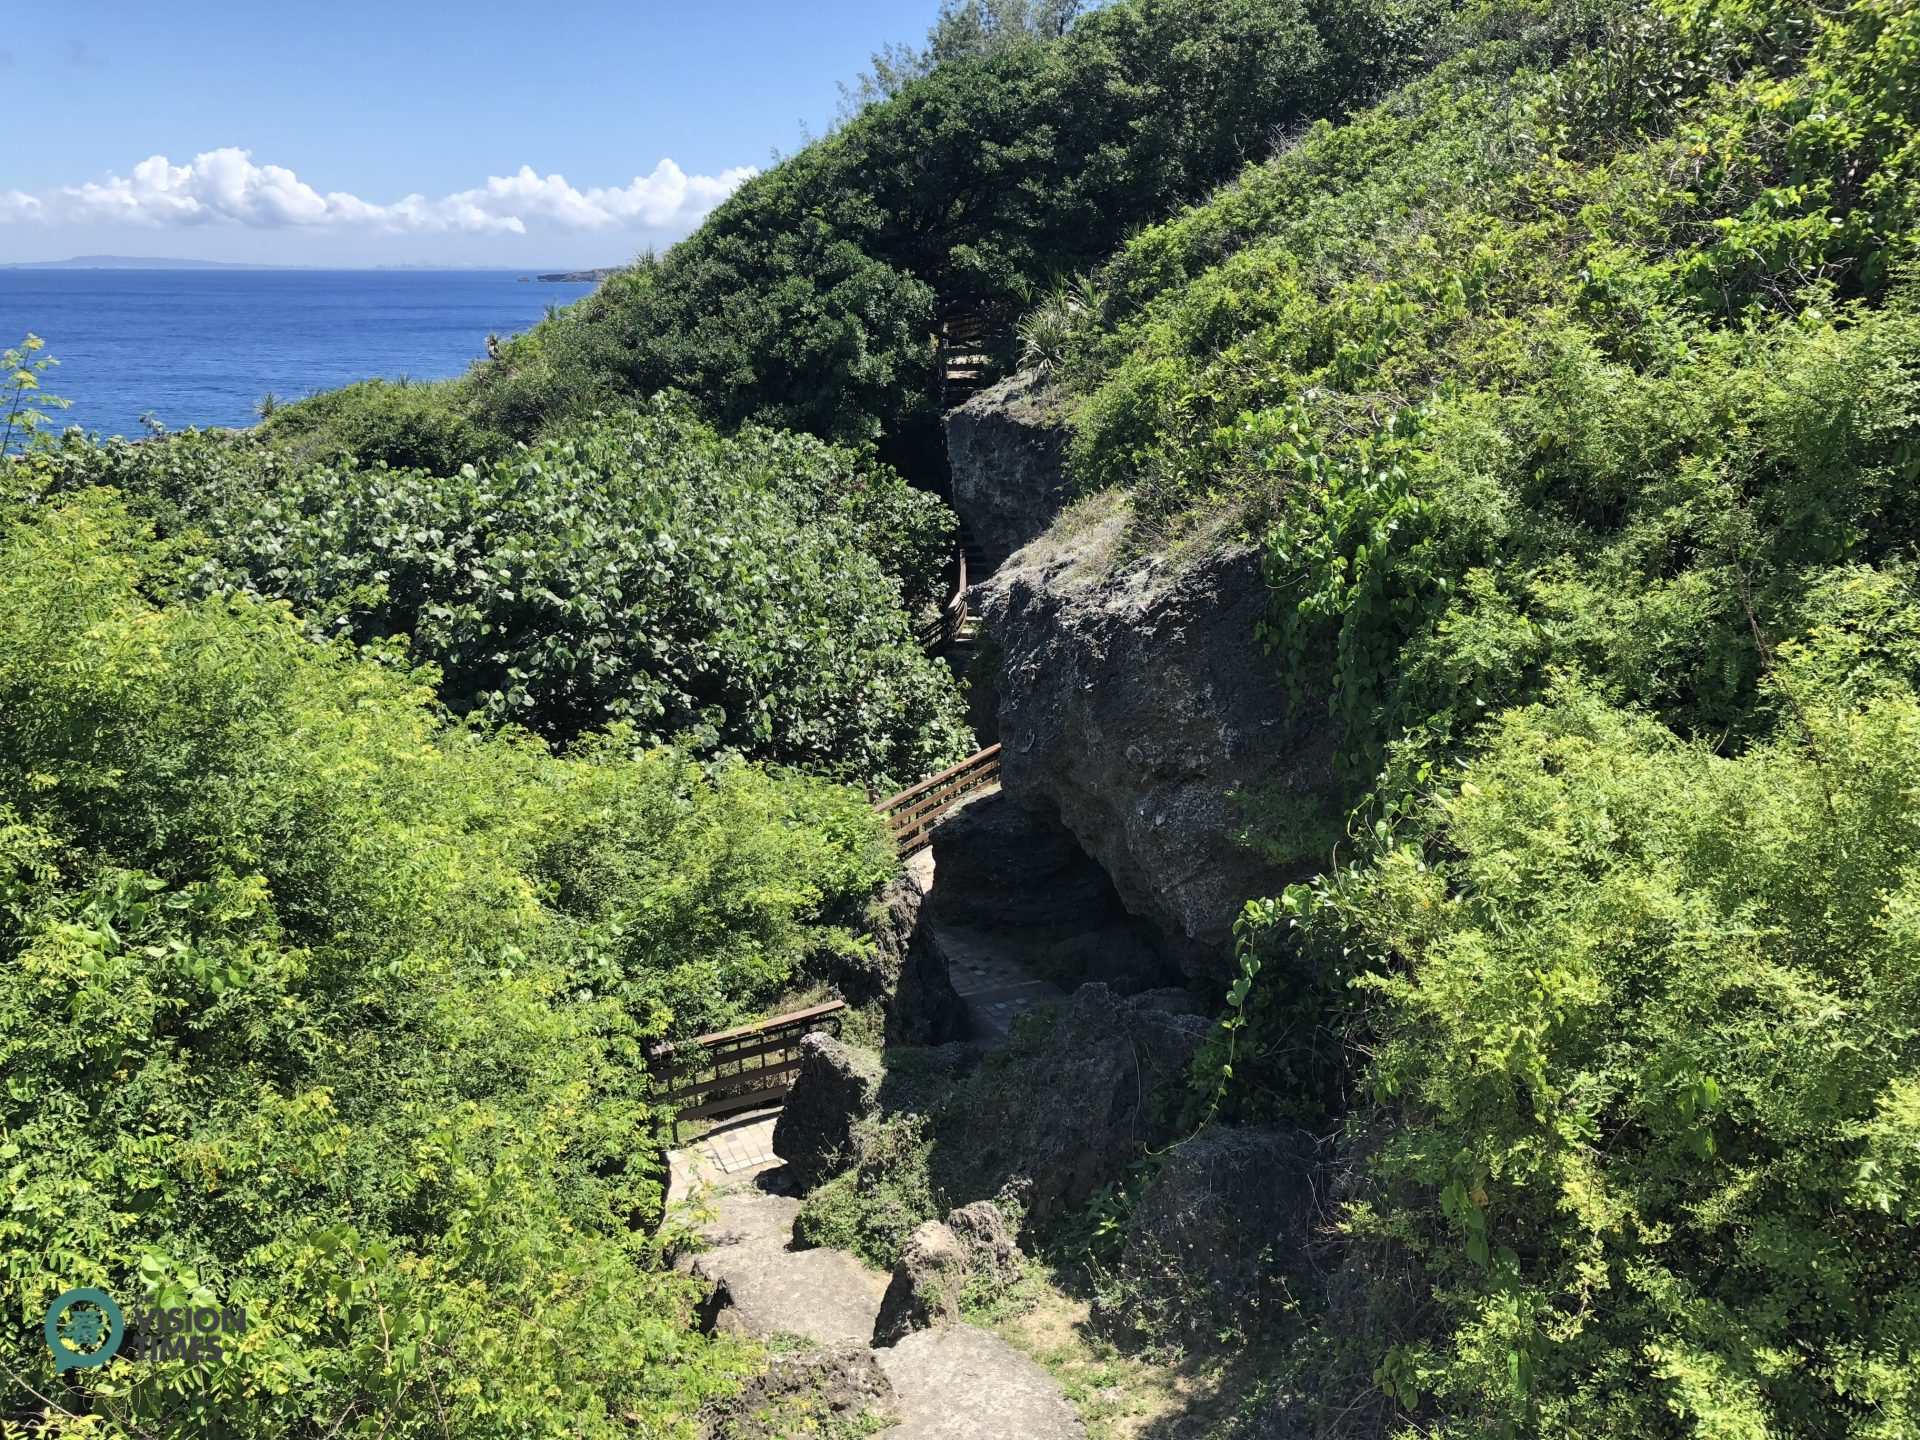 A picturesque hiking trail at the Black Dwarf Cave in Liuqiu. (Image: Billy Shyu / Vision Times)